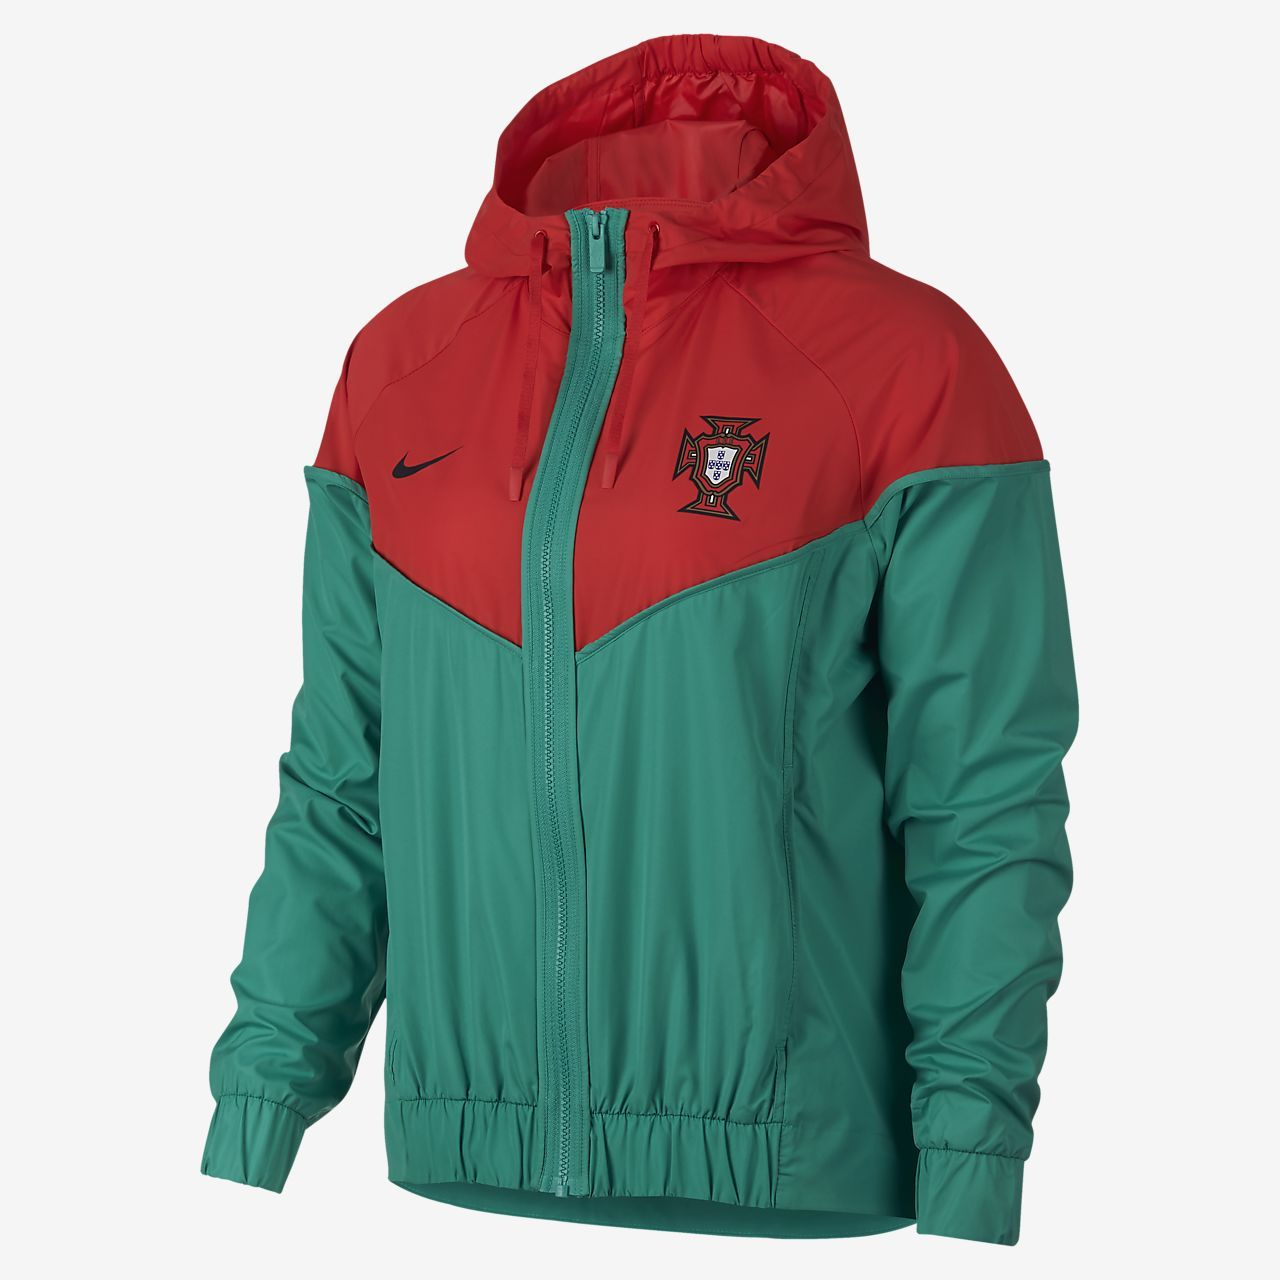 750cd797 Portugal Windrunner Women's Jacket | Women's Fashion | Jackets ...